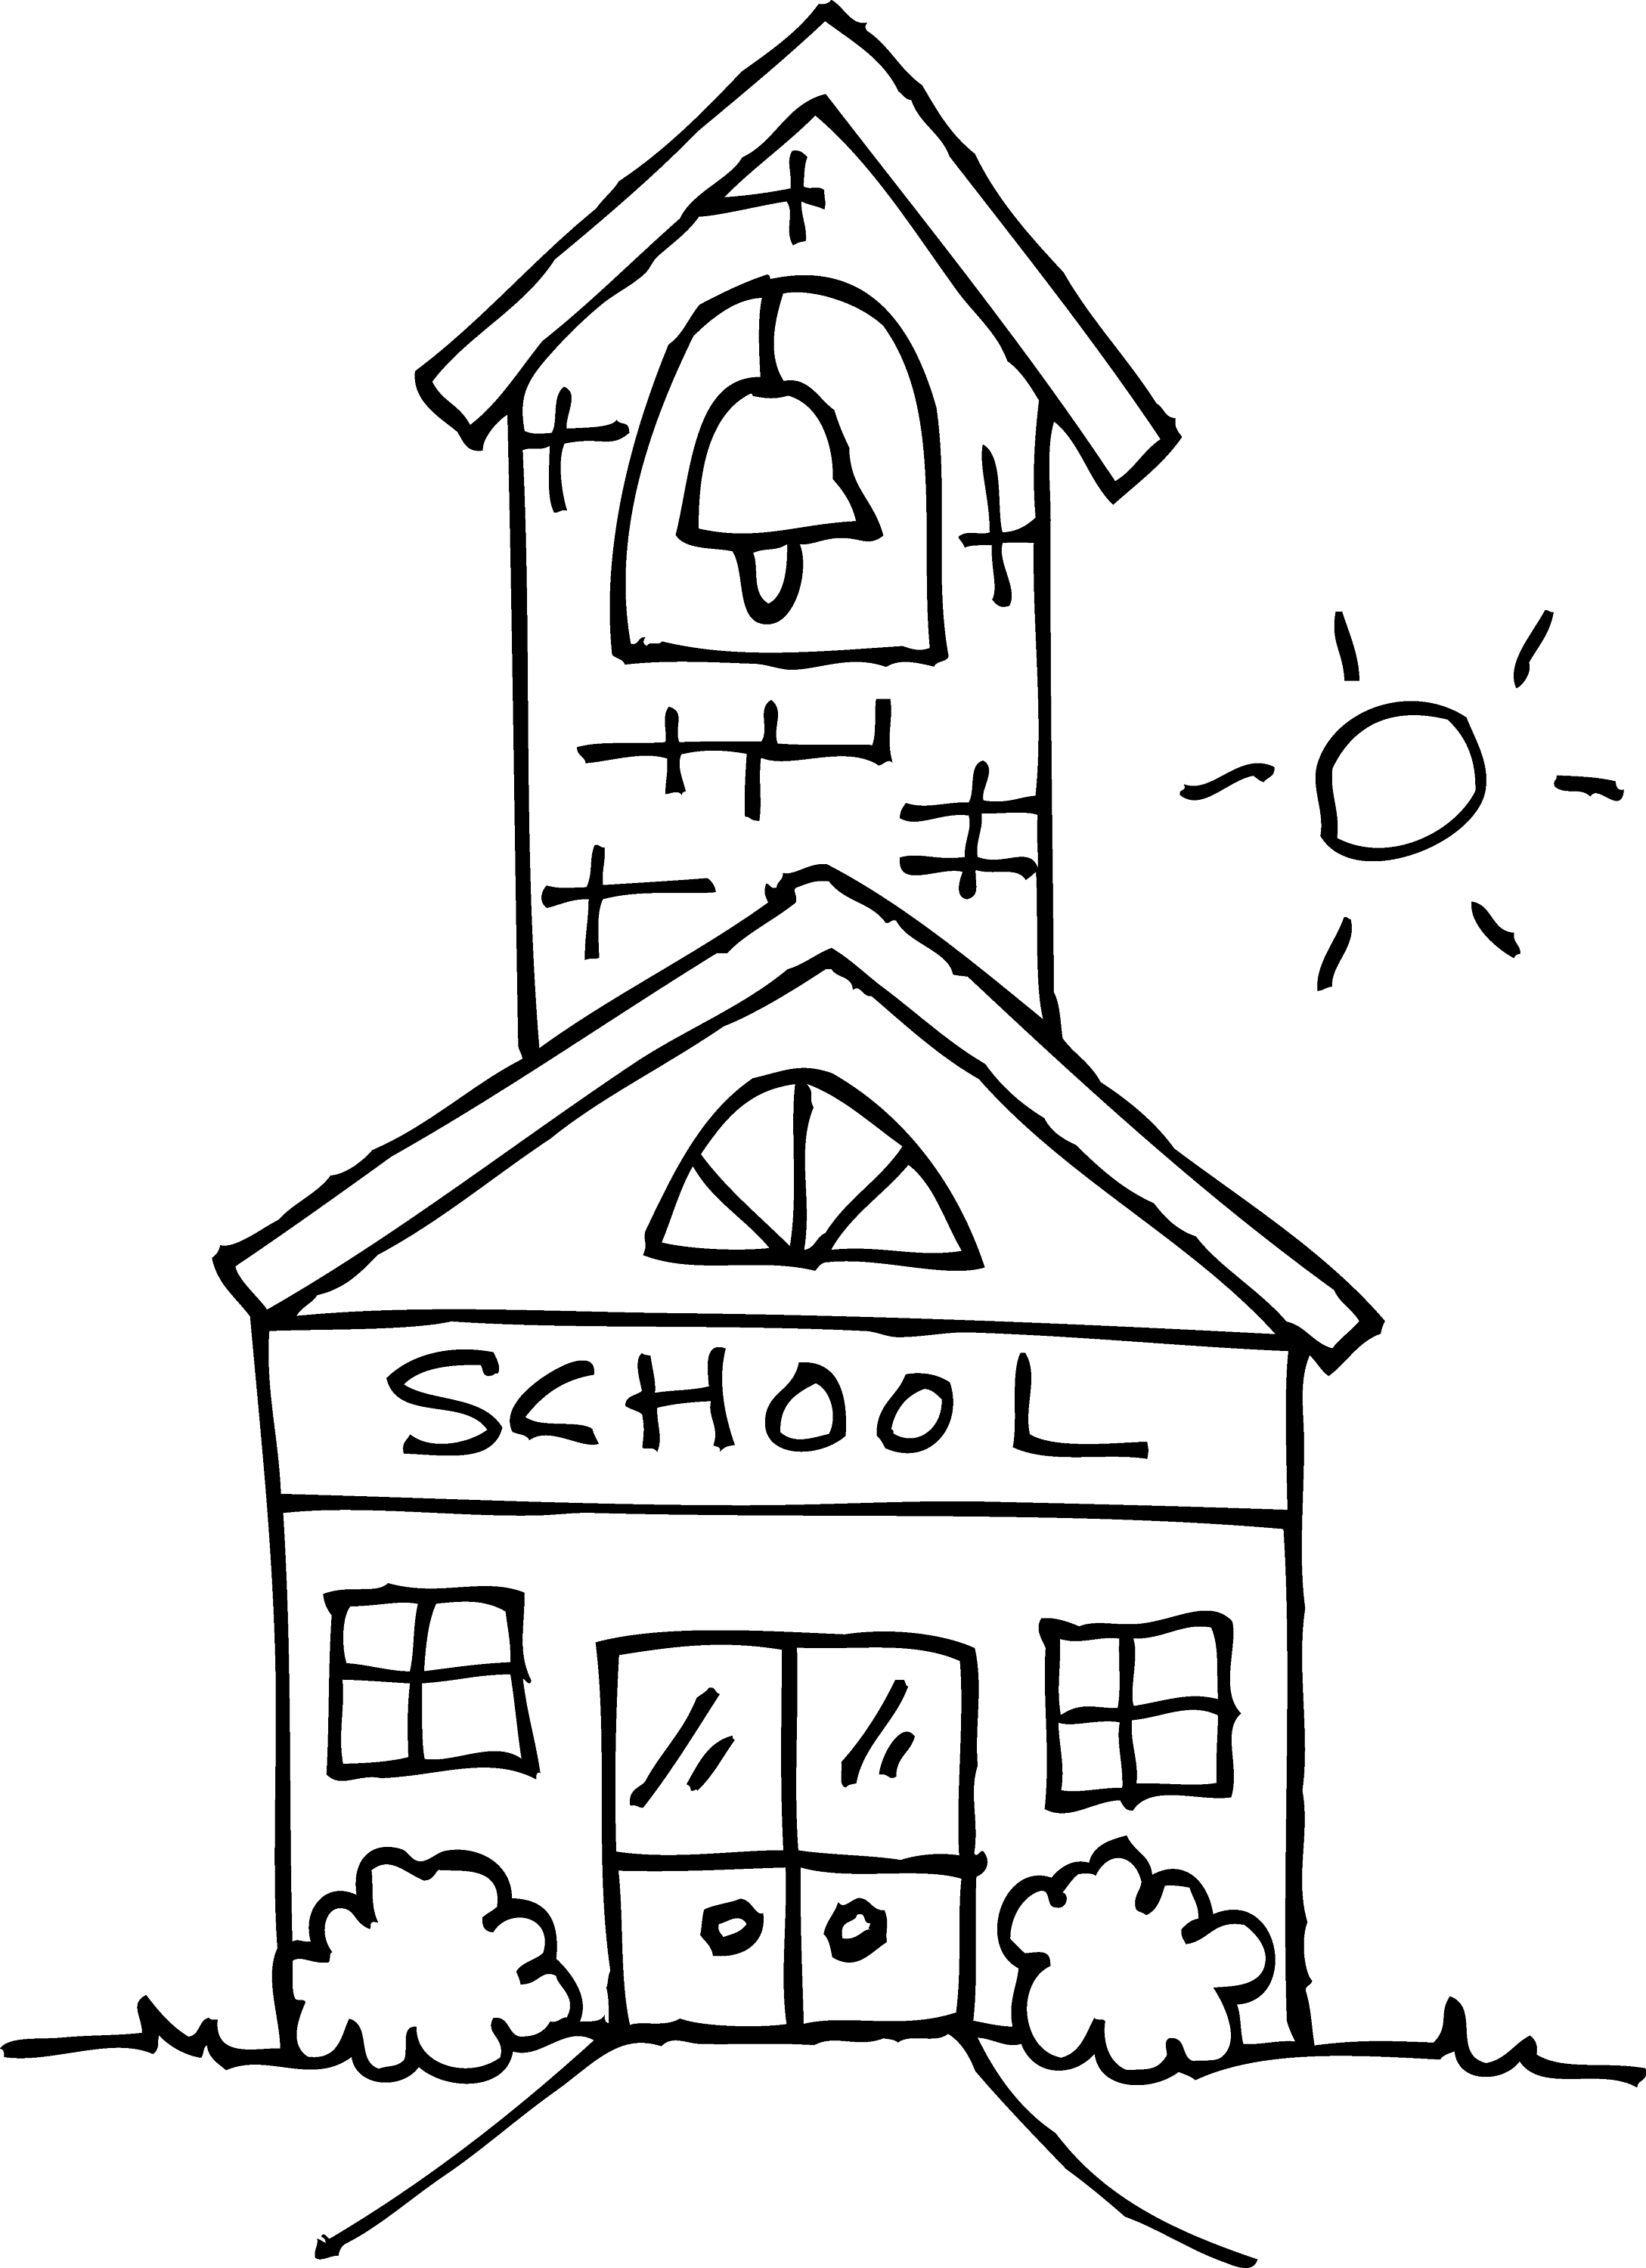 school room coloring pages - photo#36